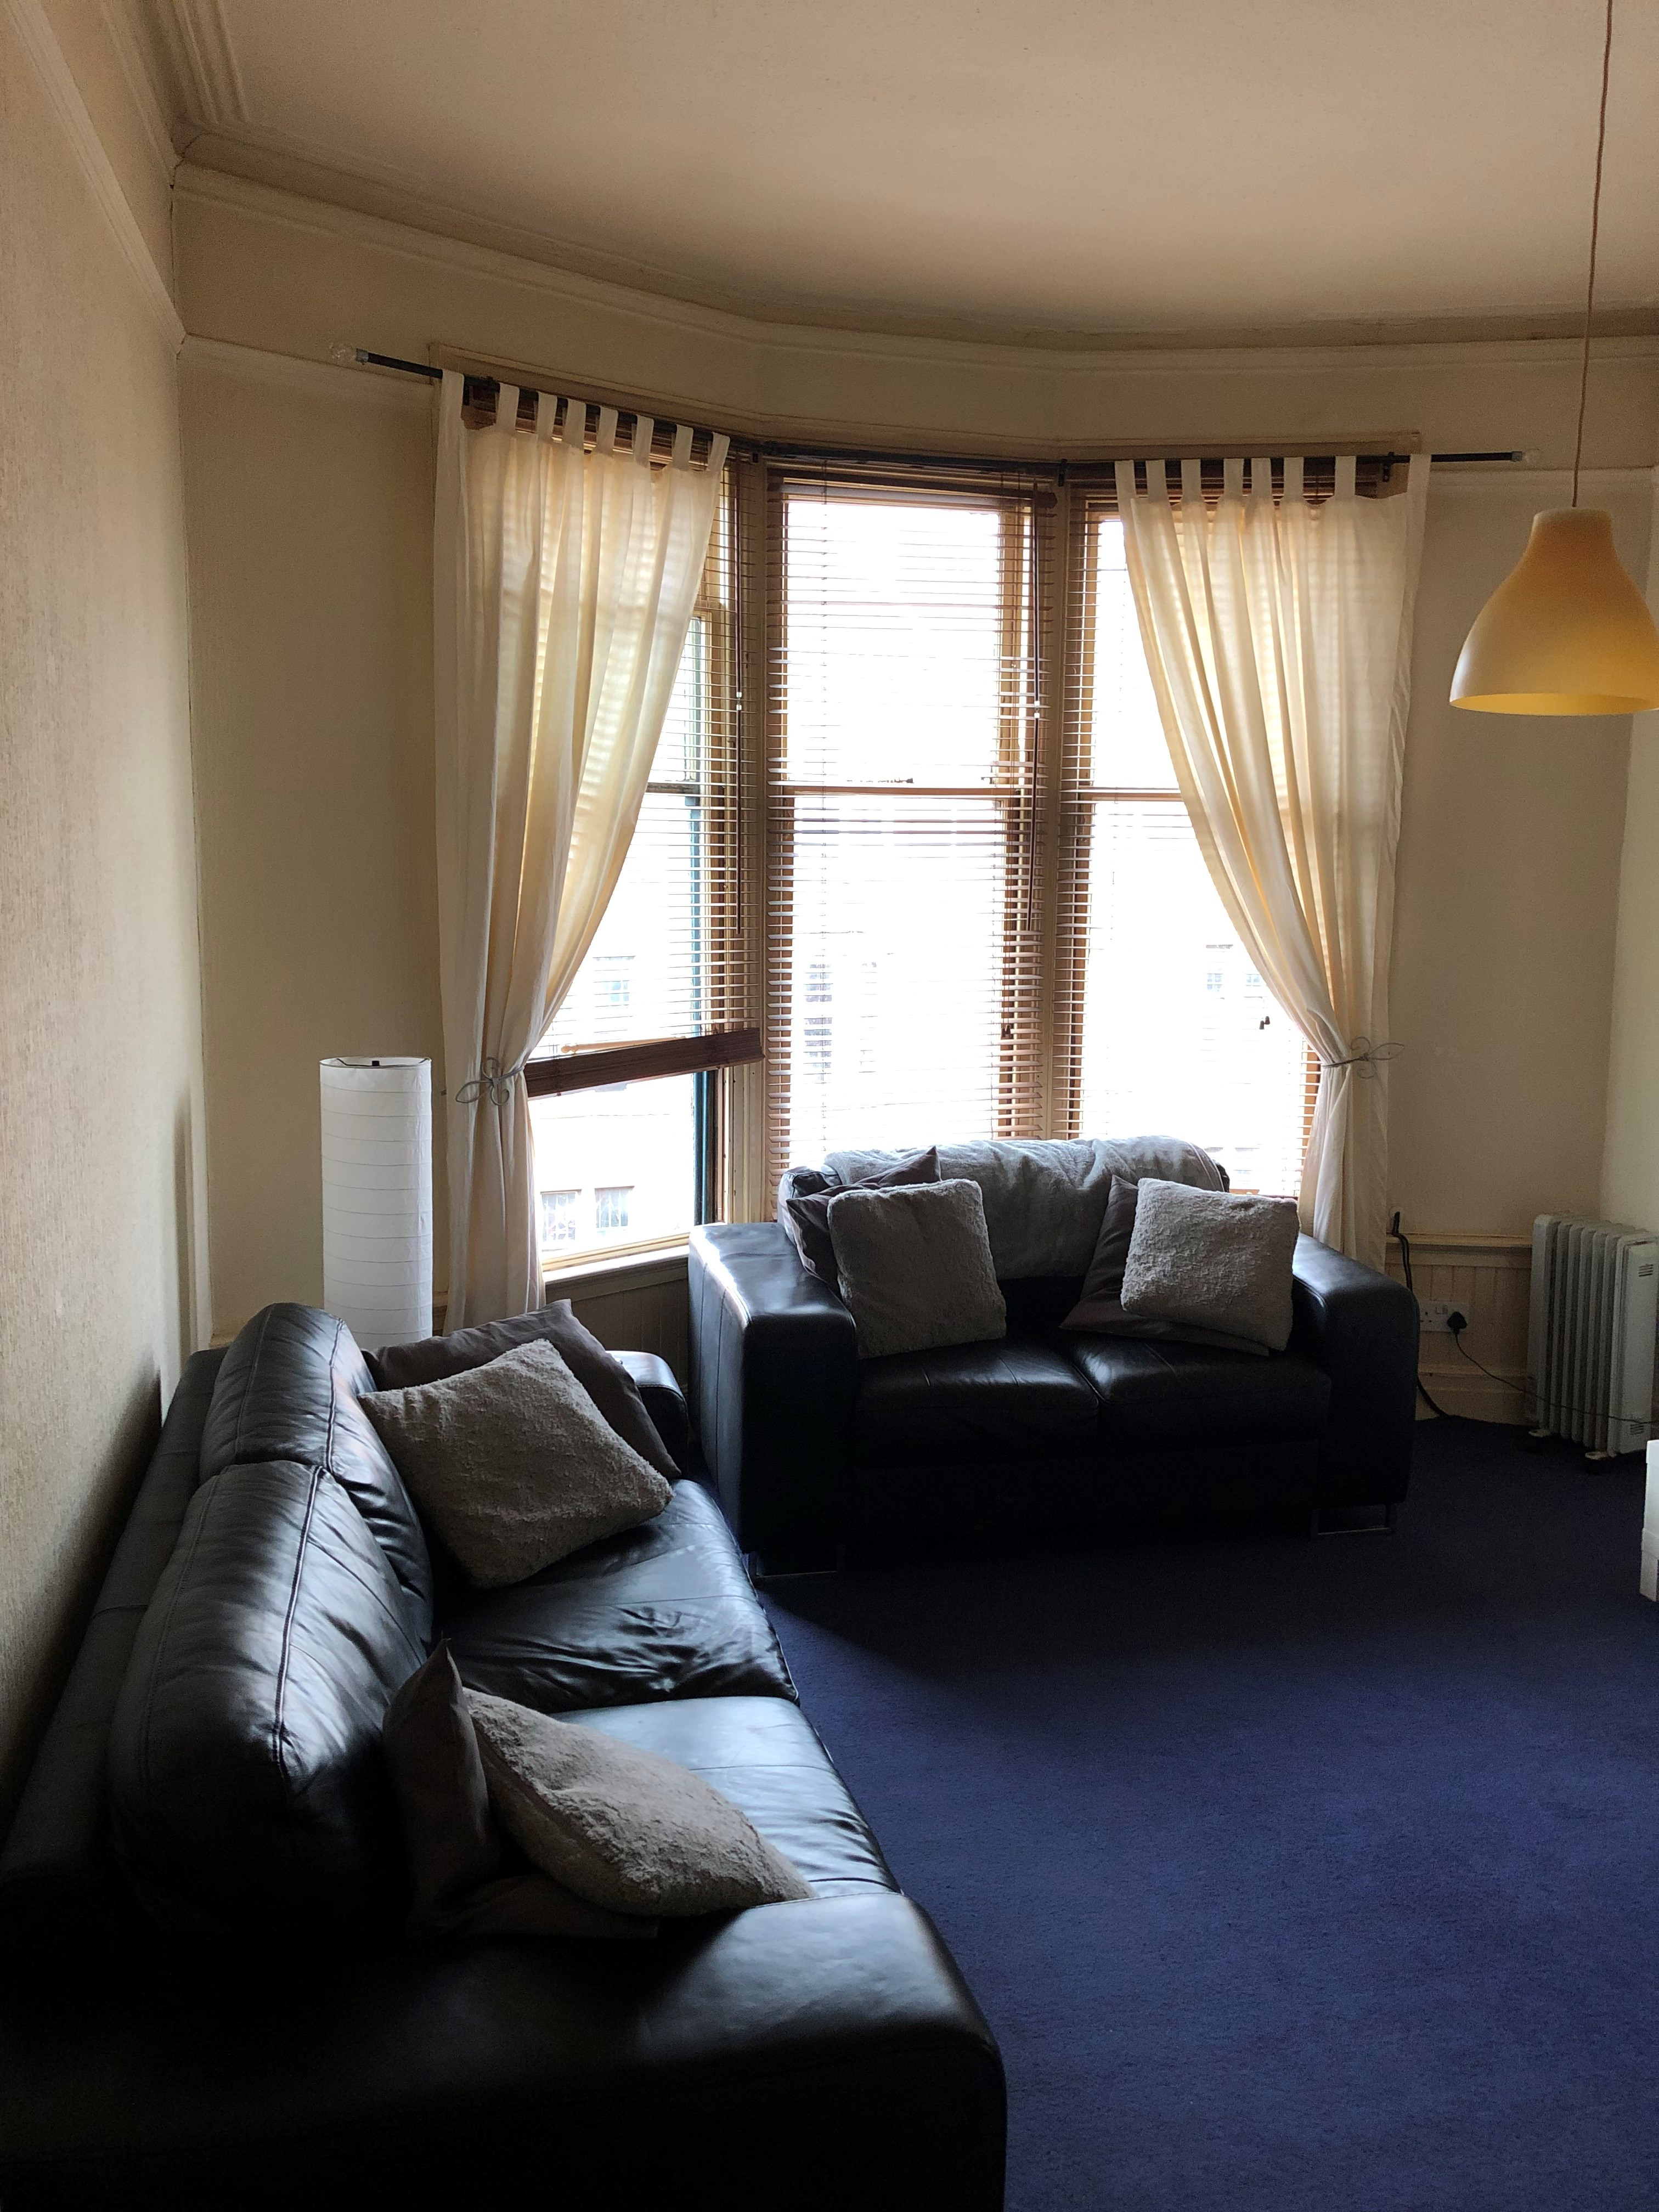 Letting agents flat available Glasgow